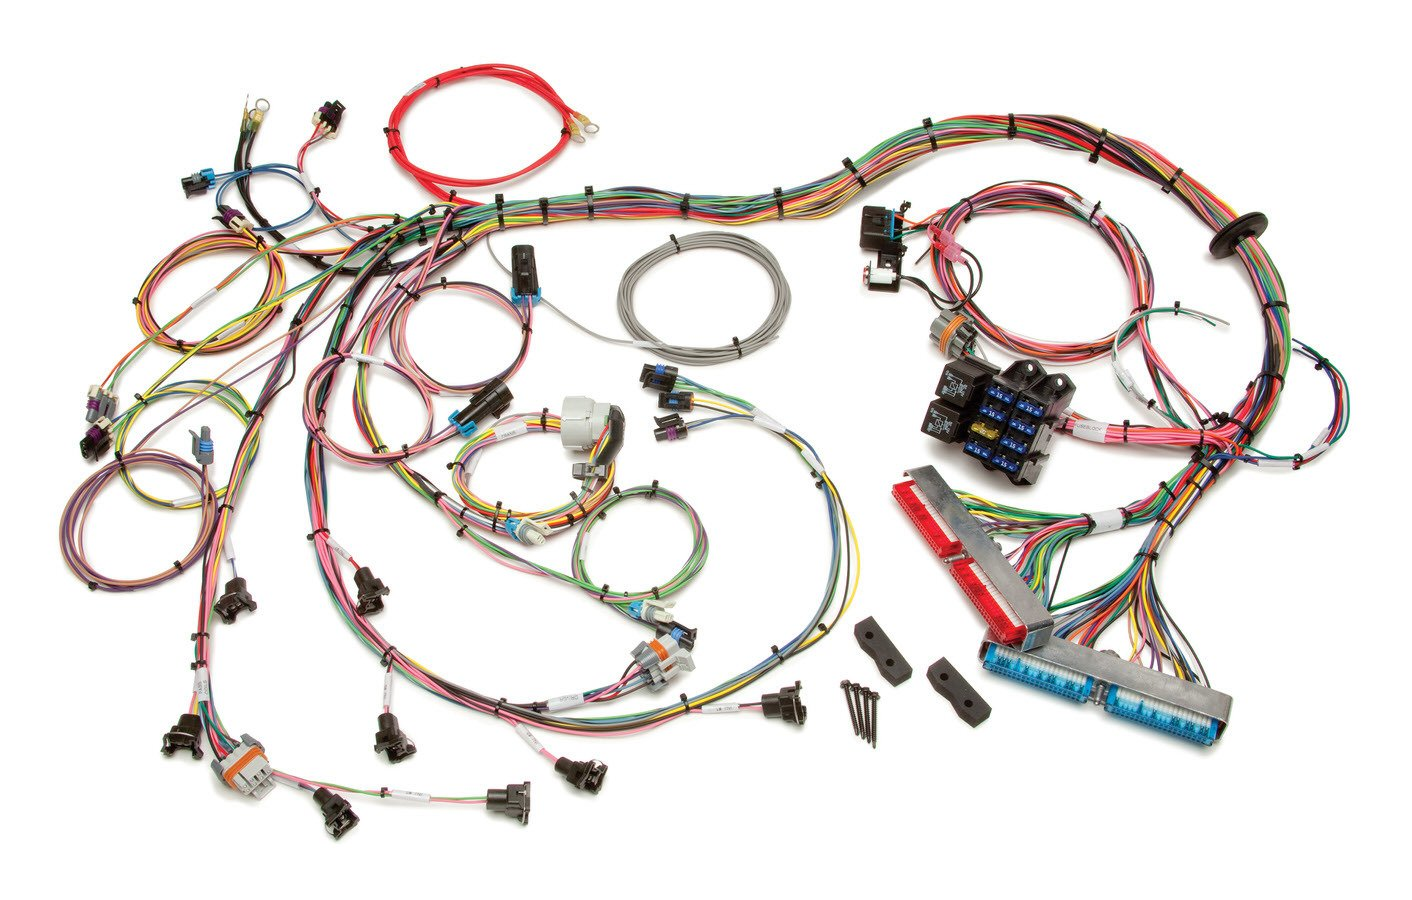 Painless Wiring 98-02 GM LS1 Fuel Inj. Wiring Harness